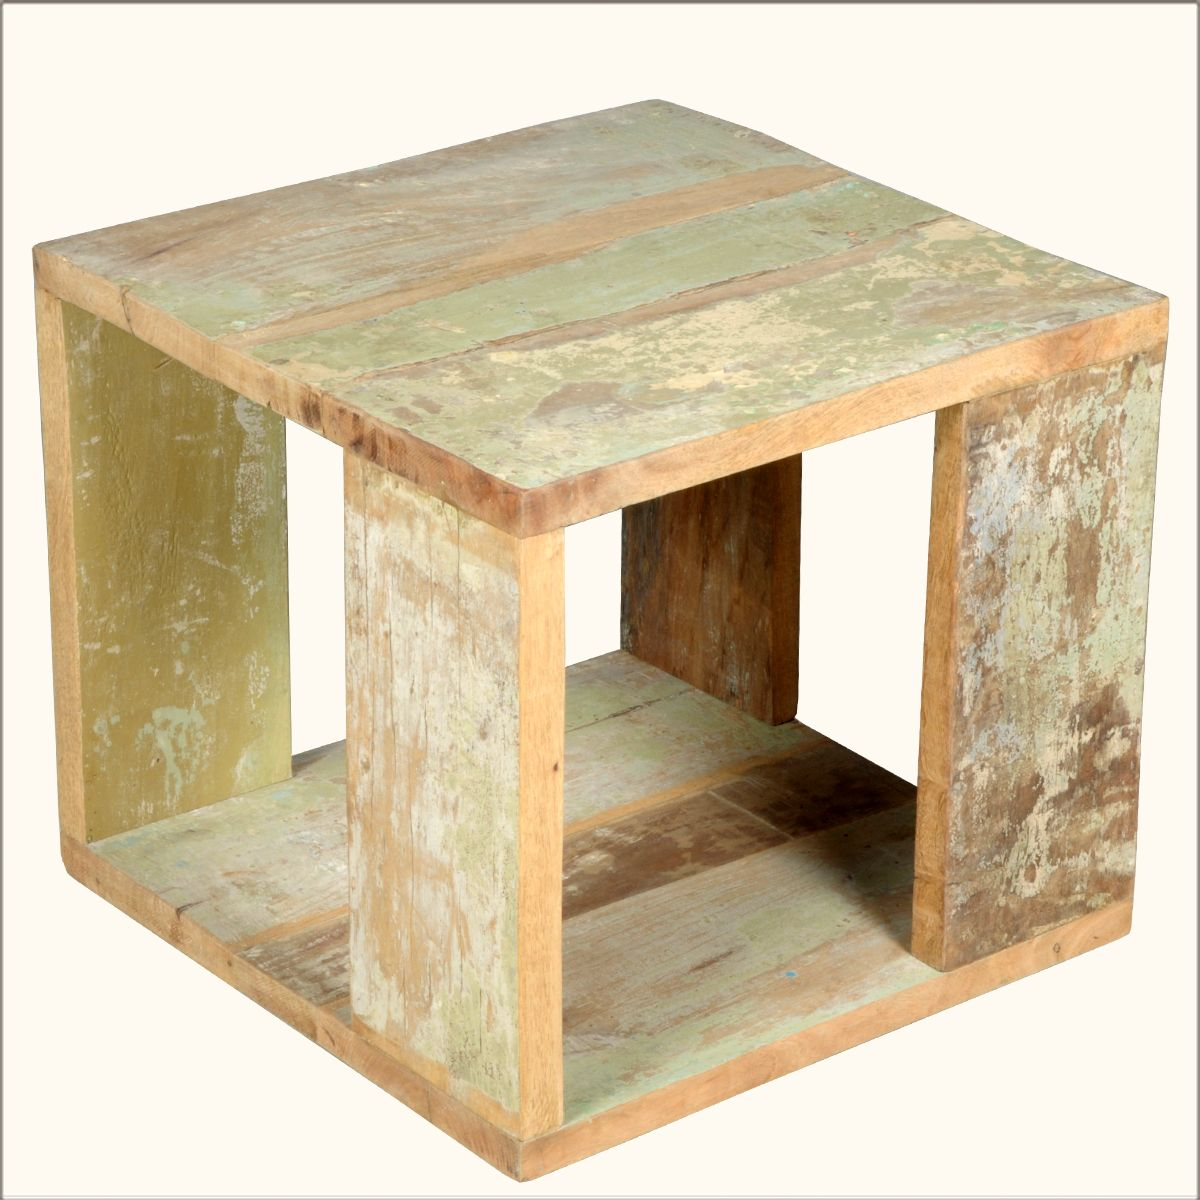 open sides reclaimed wood cube pedestal accent table rustic furniture tucson silver mirrored bedside tables the uttermost company baby changing pad patio umbrella hole insert